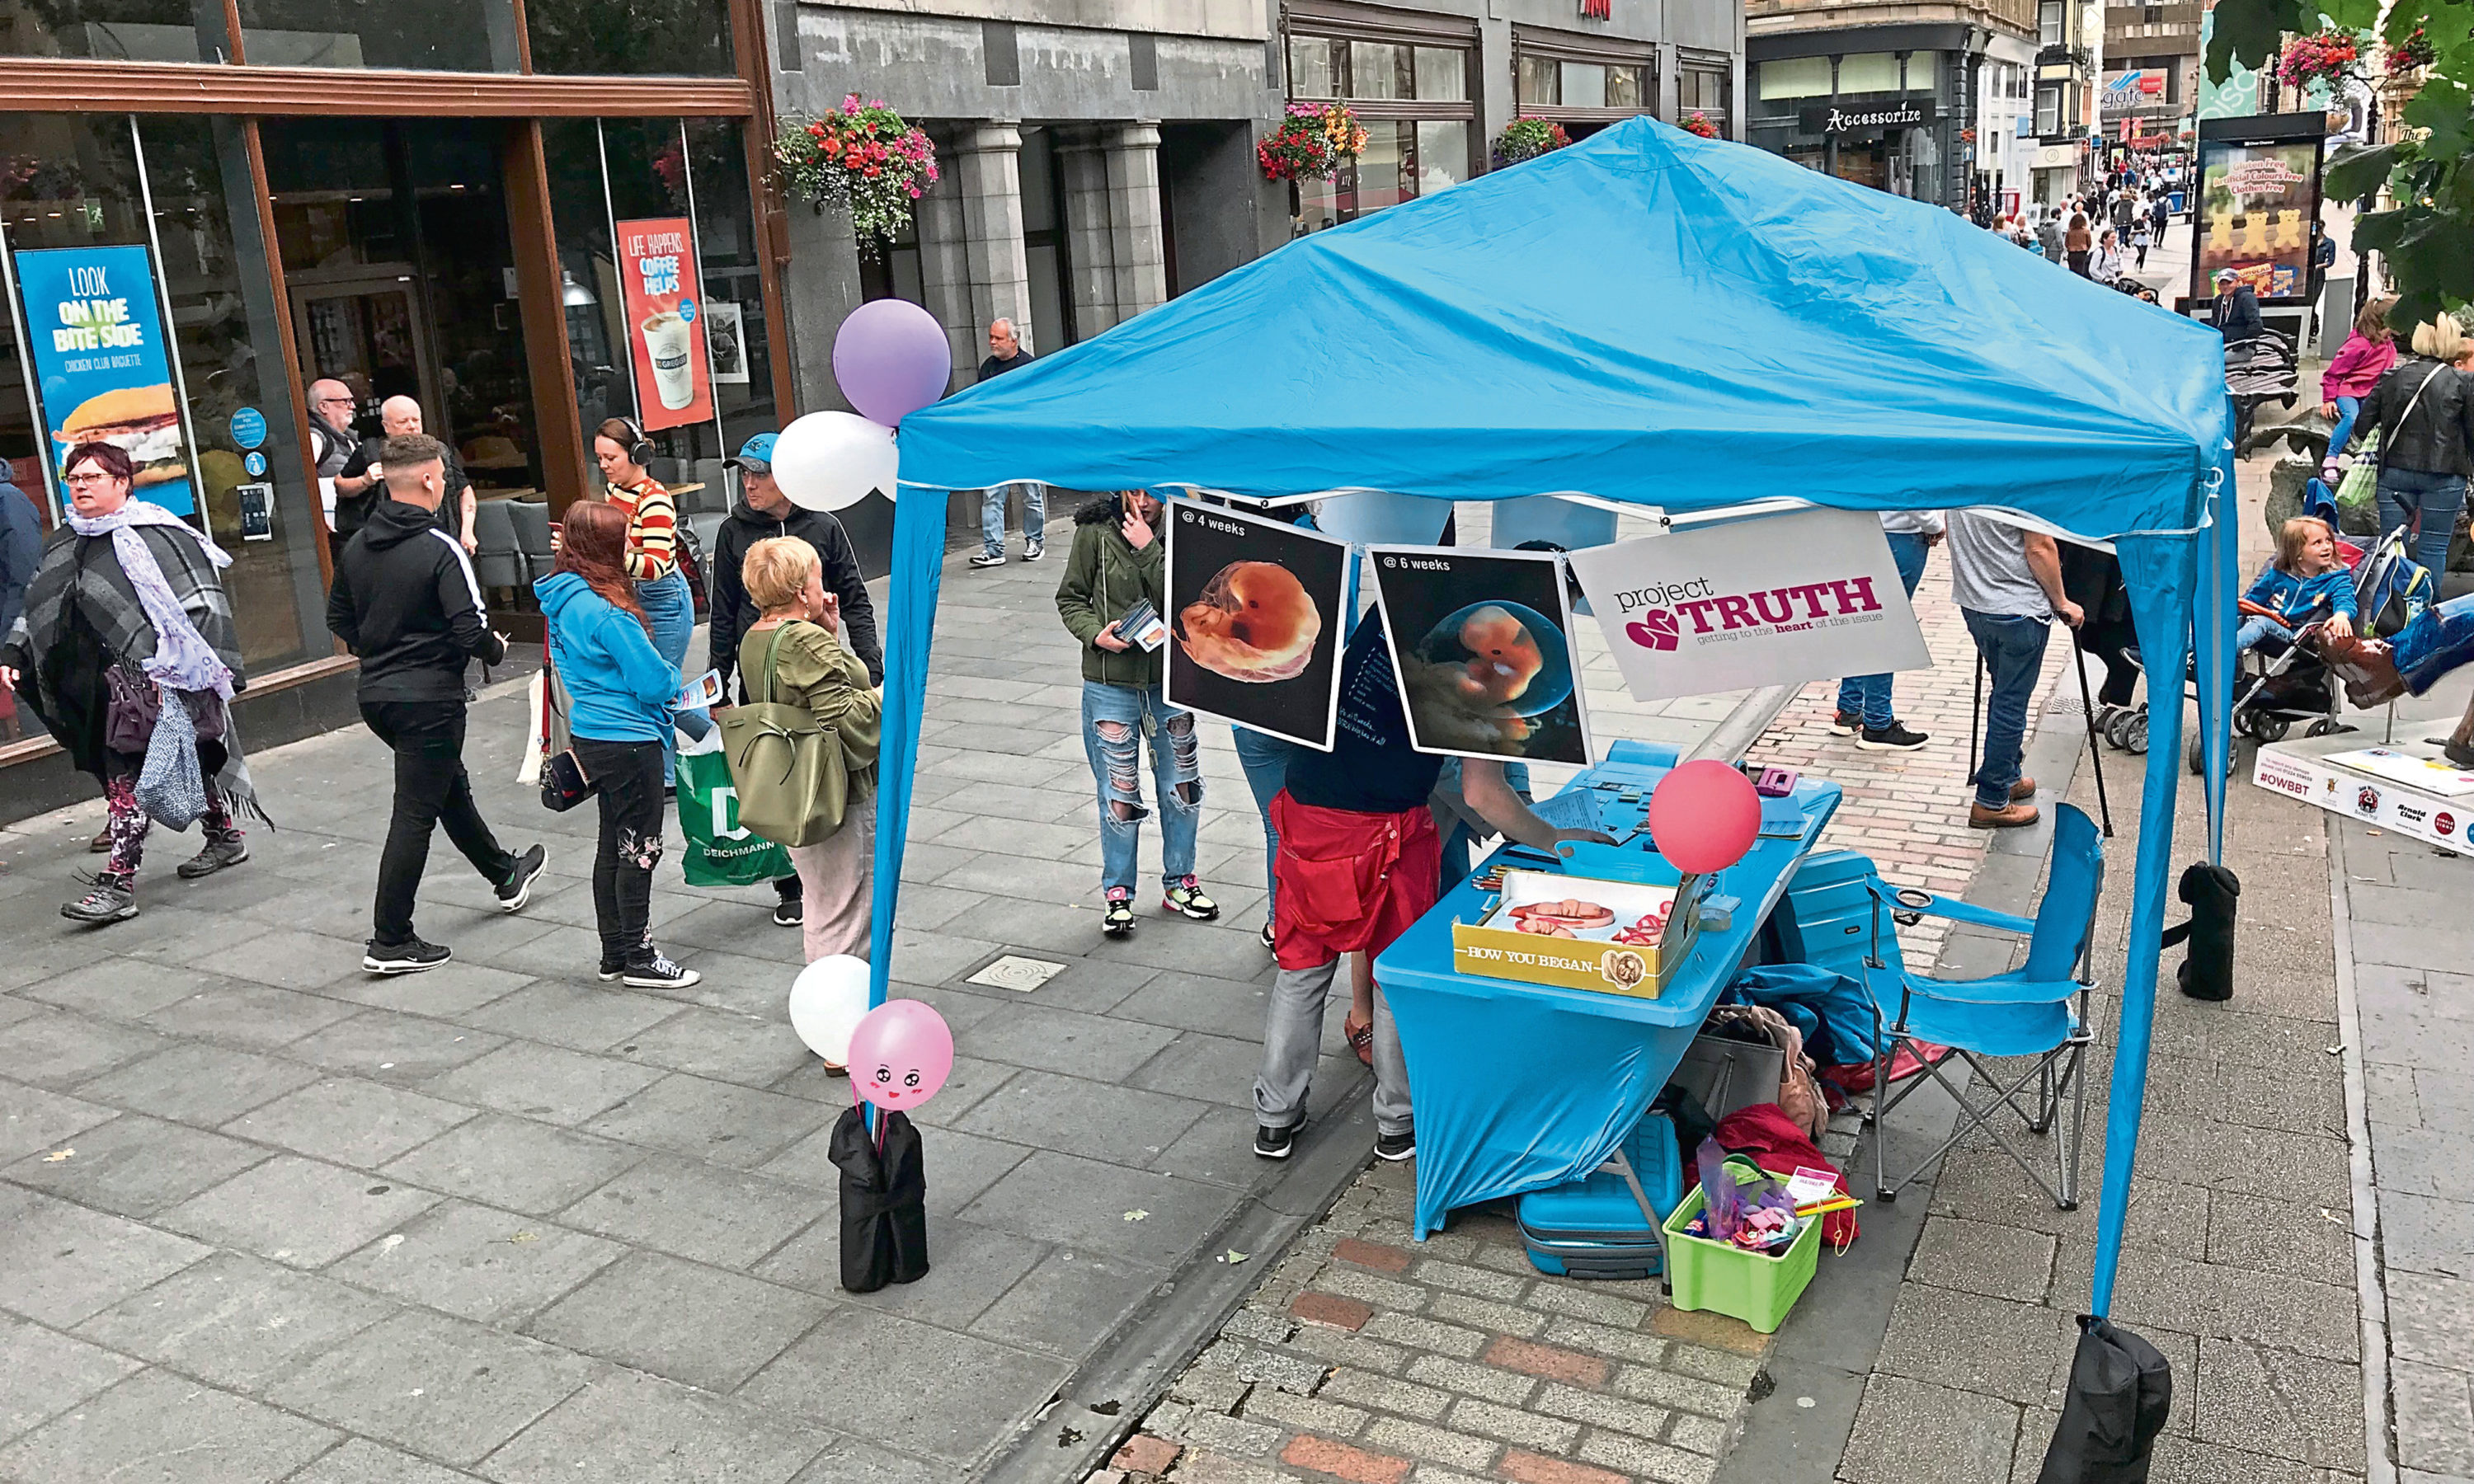 Pro-life group Project Truth has held a divisive leafleting campaign on Dundee High Street.